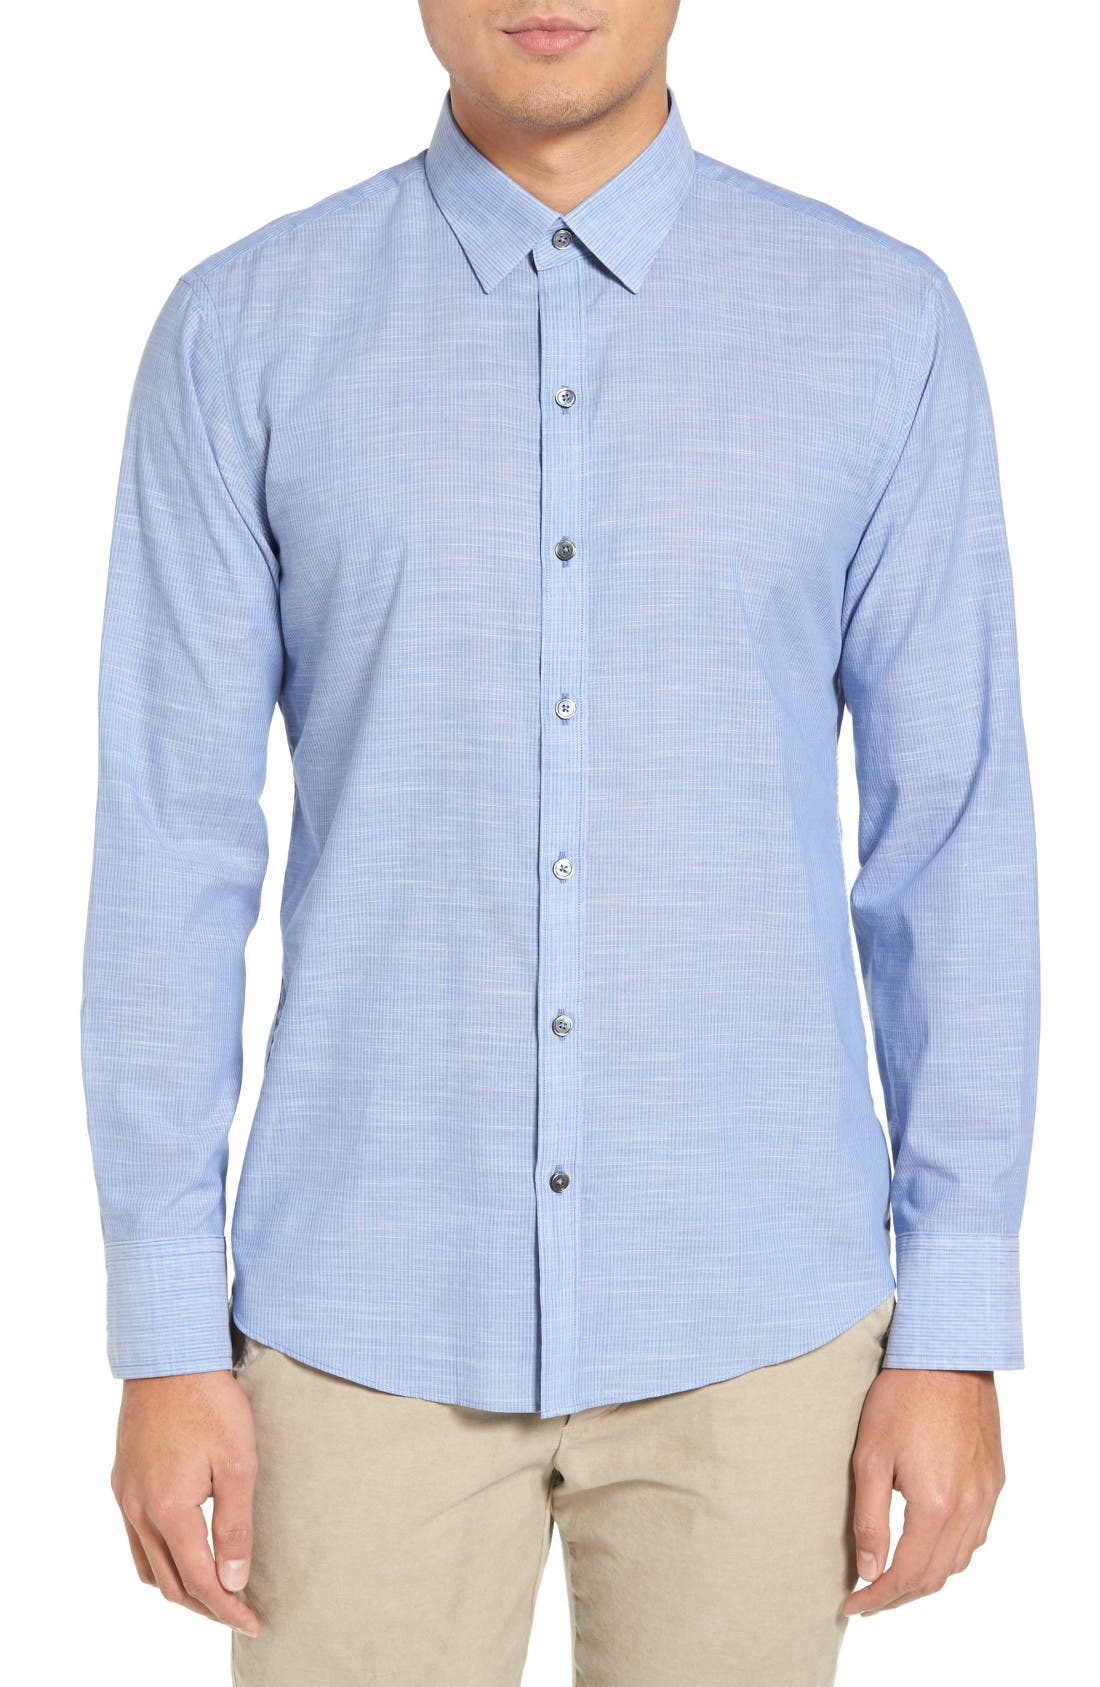 Ronan Trim Fit Stripe Sport Shirt,                         Main,                         color, Blue